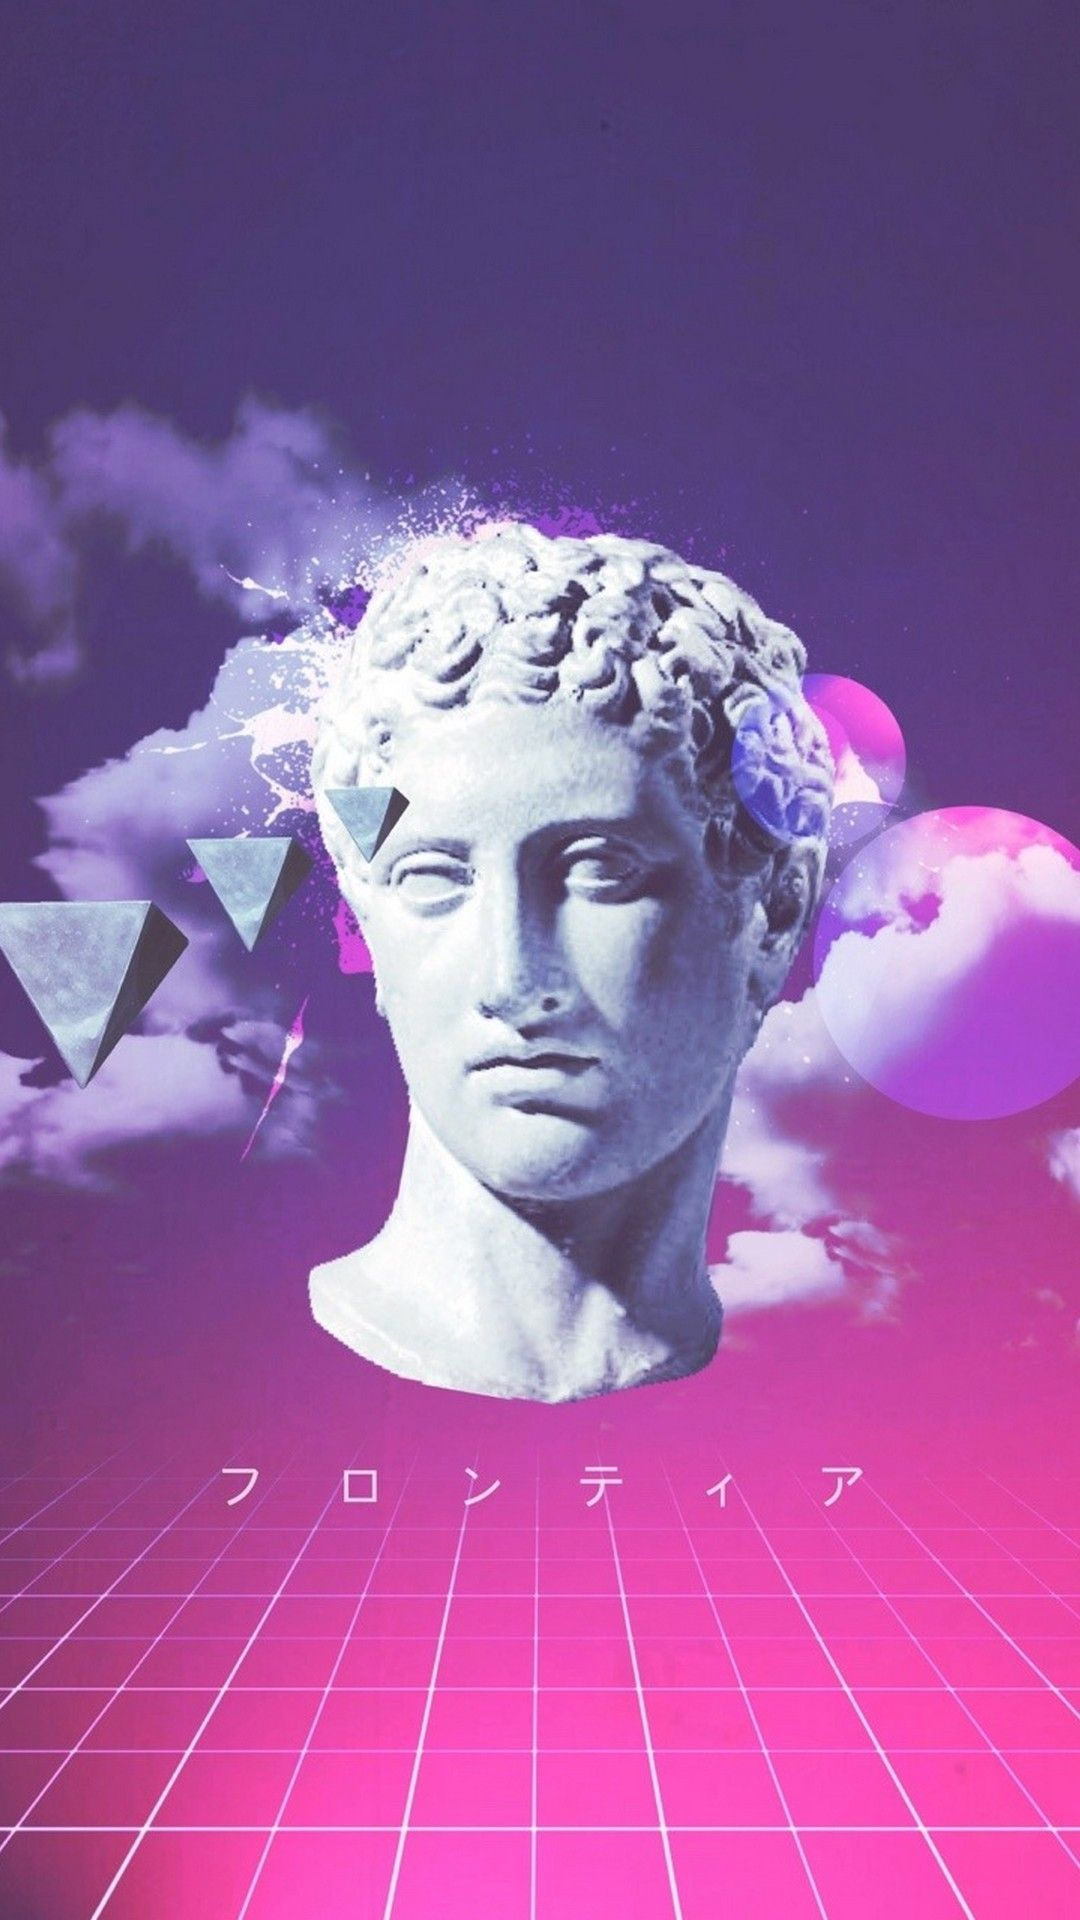 Pin by Lil Intro Vert on AESTHETIC in 2019 Vaporwave art